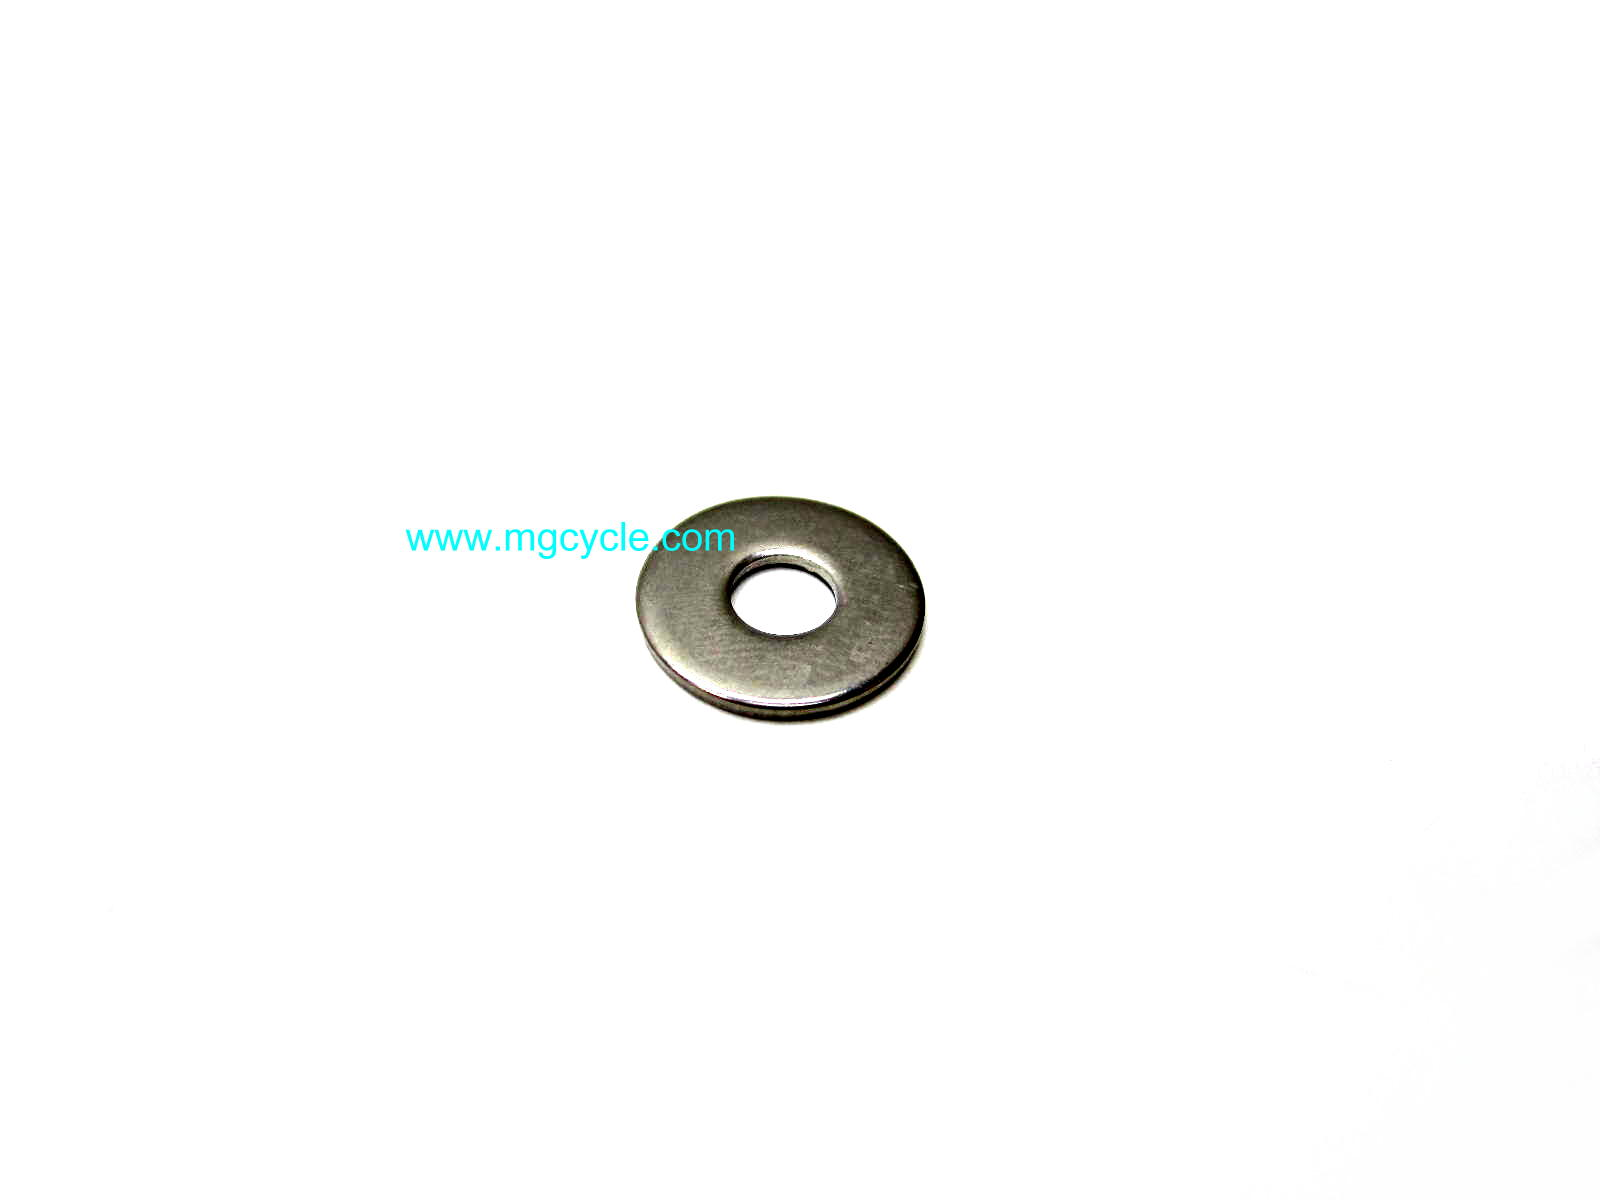 M6 fender washer inox various rubber mounts GU95000206